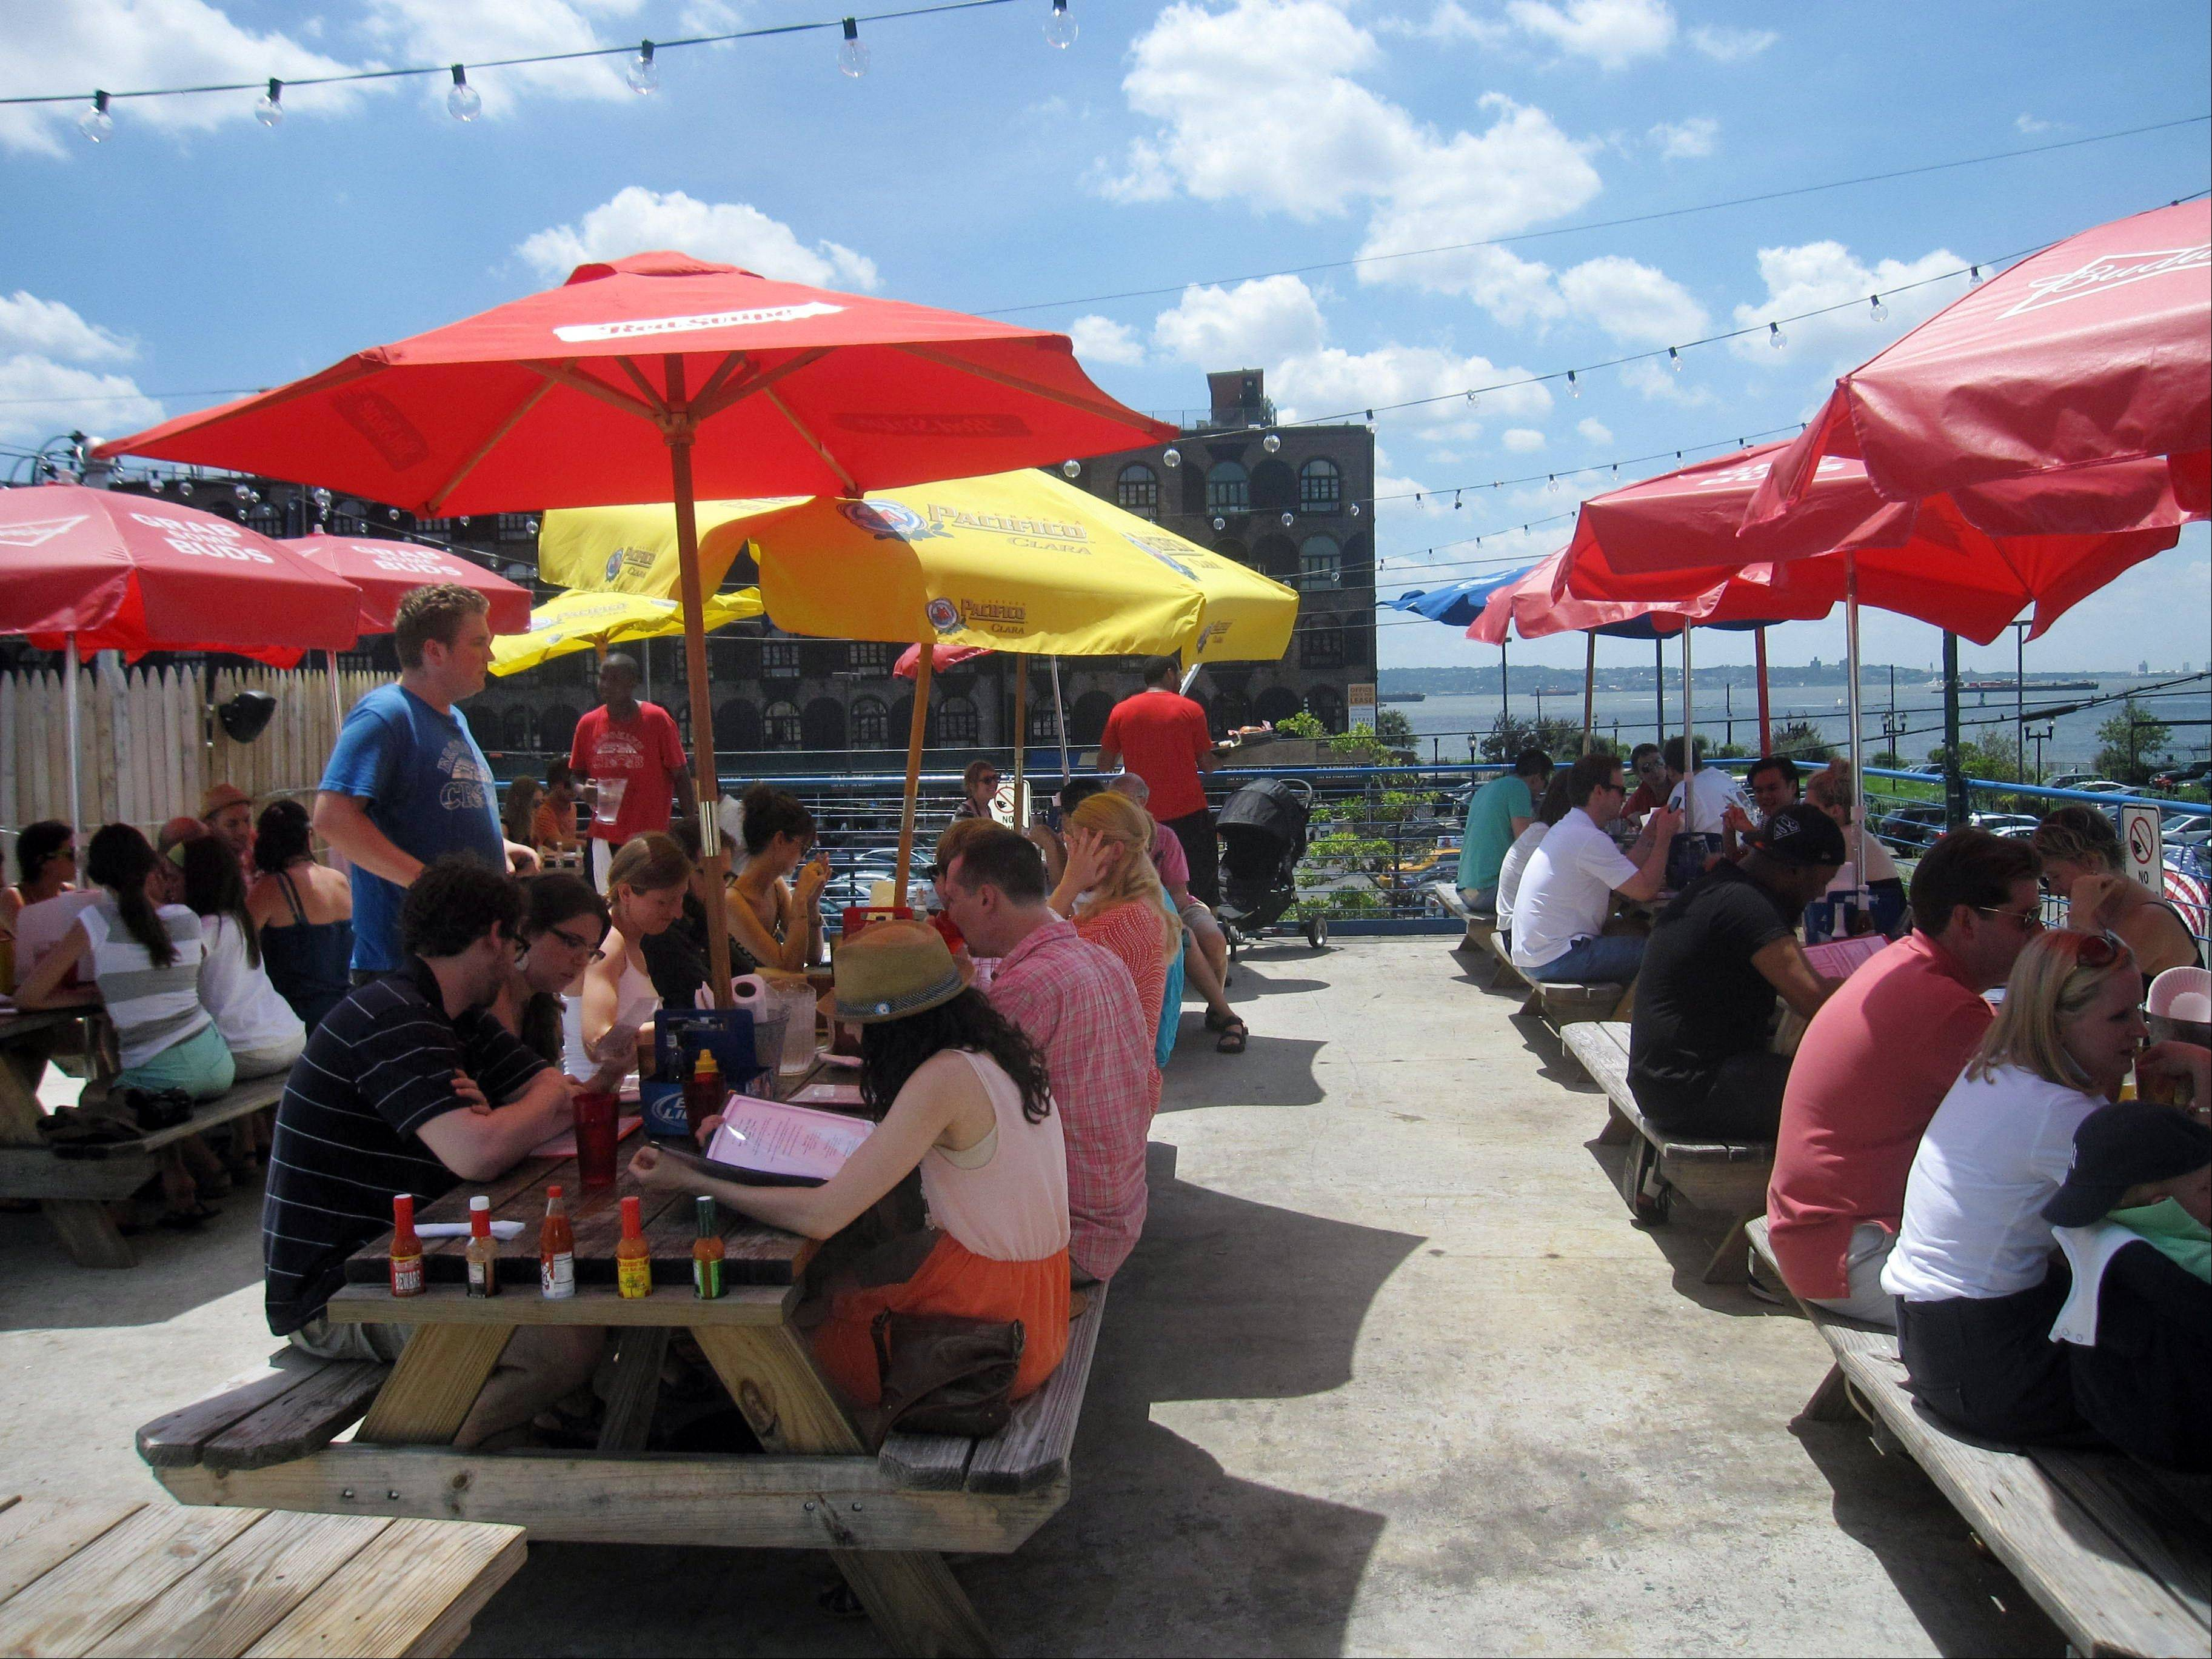 Diners eat at picnic tables with colorful umbrellas at Brooklyn Crab in Red Hook, a popular seafood eatery in a working-class industrial neighborhood in New York City's Brooklyn borough. The restaurant offers a view of the Brooklyn waterfront.